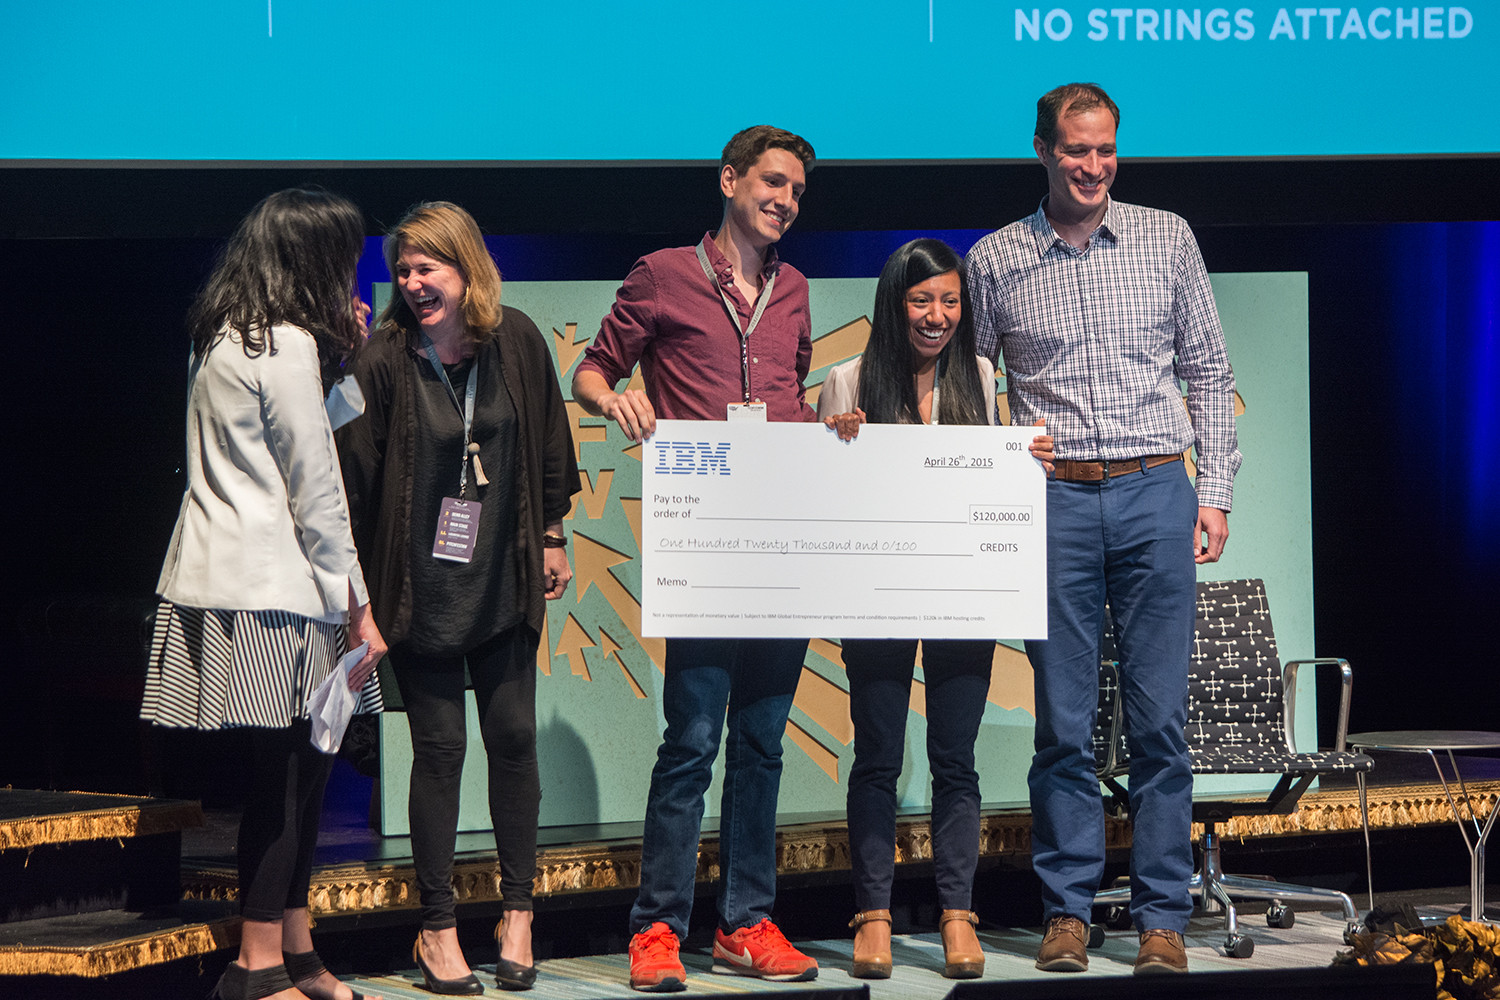 50 startups go to bat (and one walks home with cash) in the first-ever PitchfestNW